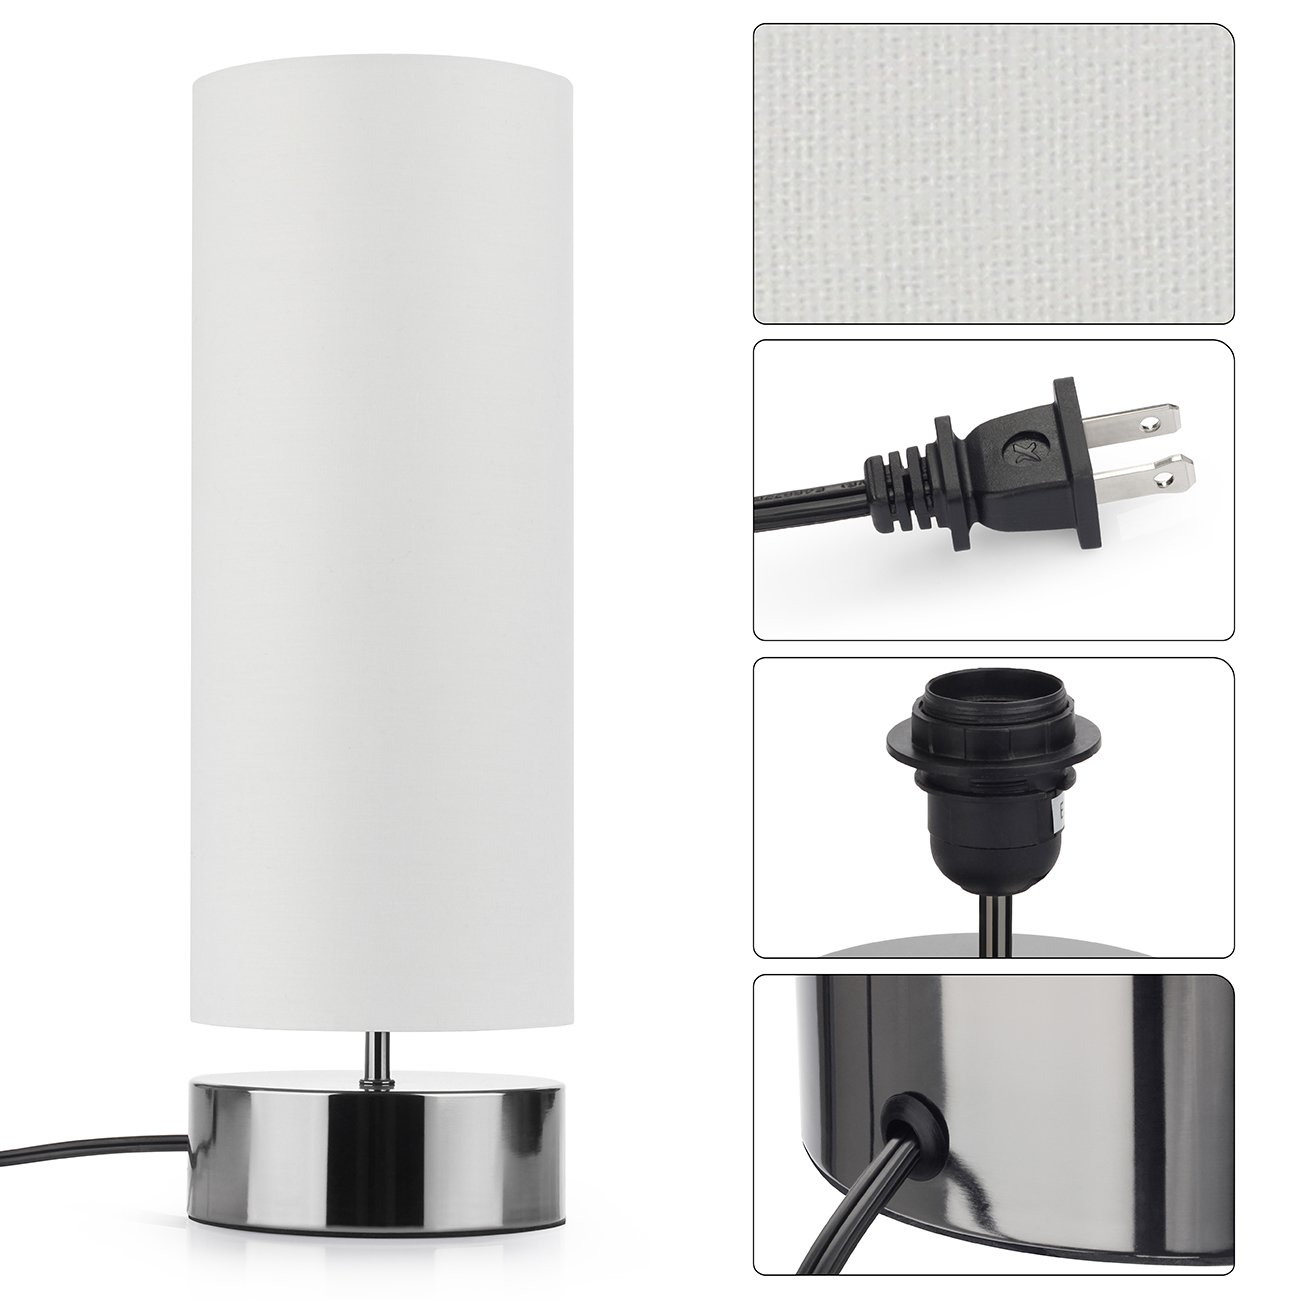 Touch Control Table Lamp Bedside Minimalist Desk Lamp Modern Accent Lamp Dimmable Touch Light with Cylinder Lamp Shade Night Light Nightstand Lamp for Bedroom Living Room Kitchen, E26 Bulb Included by Seaside village (Image #7)